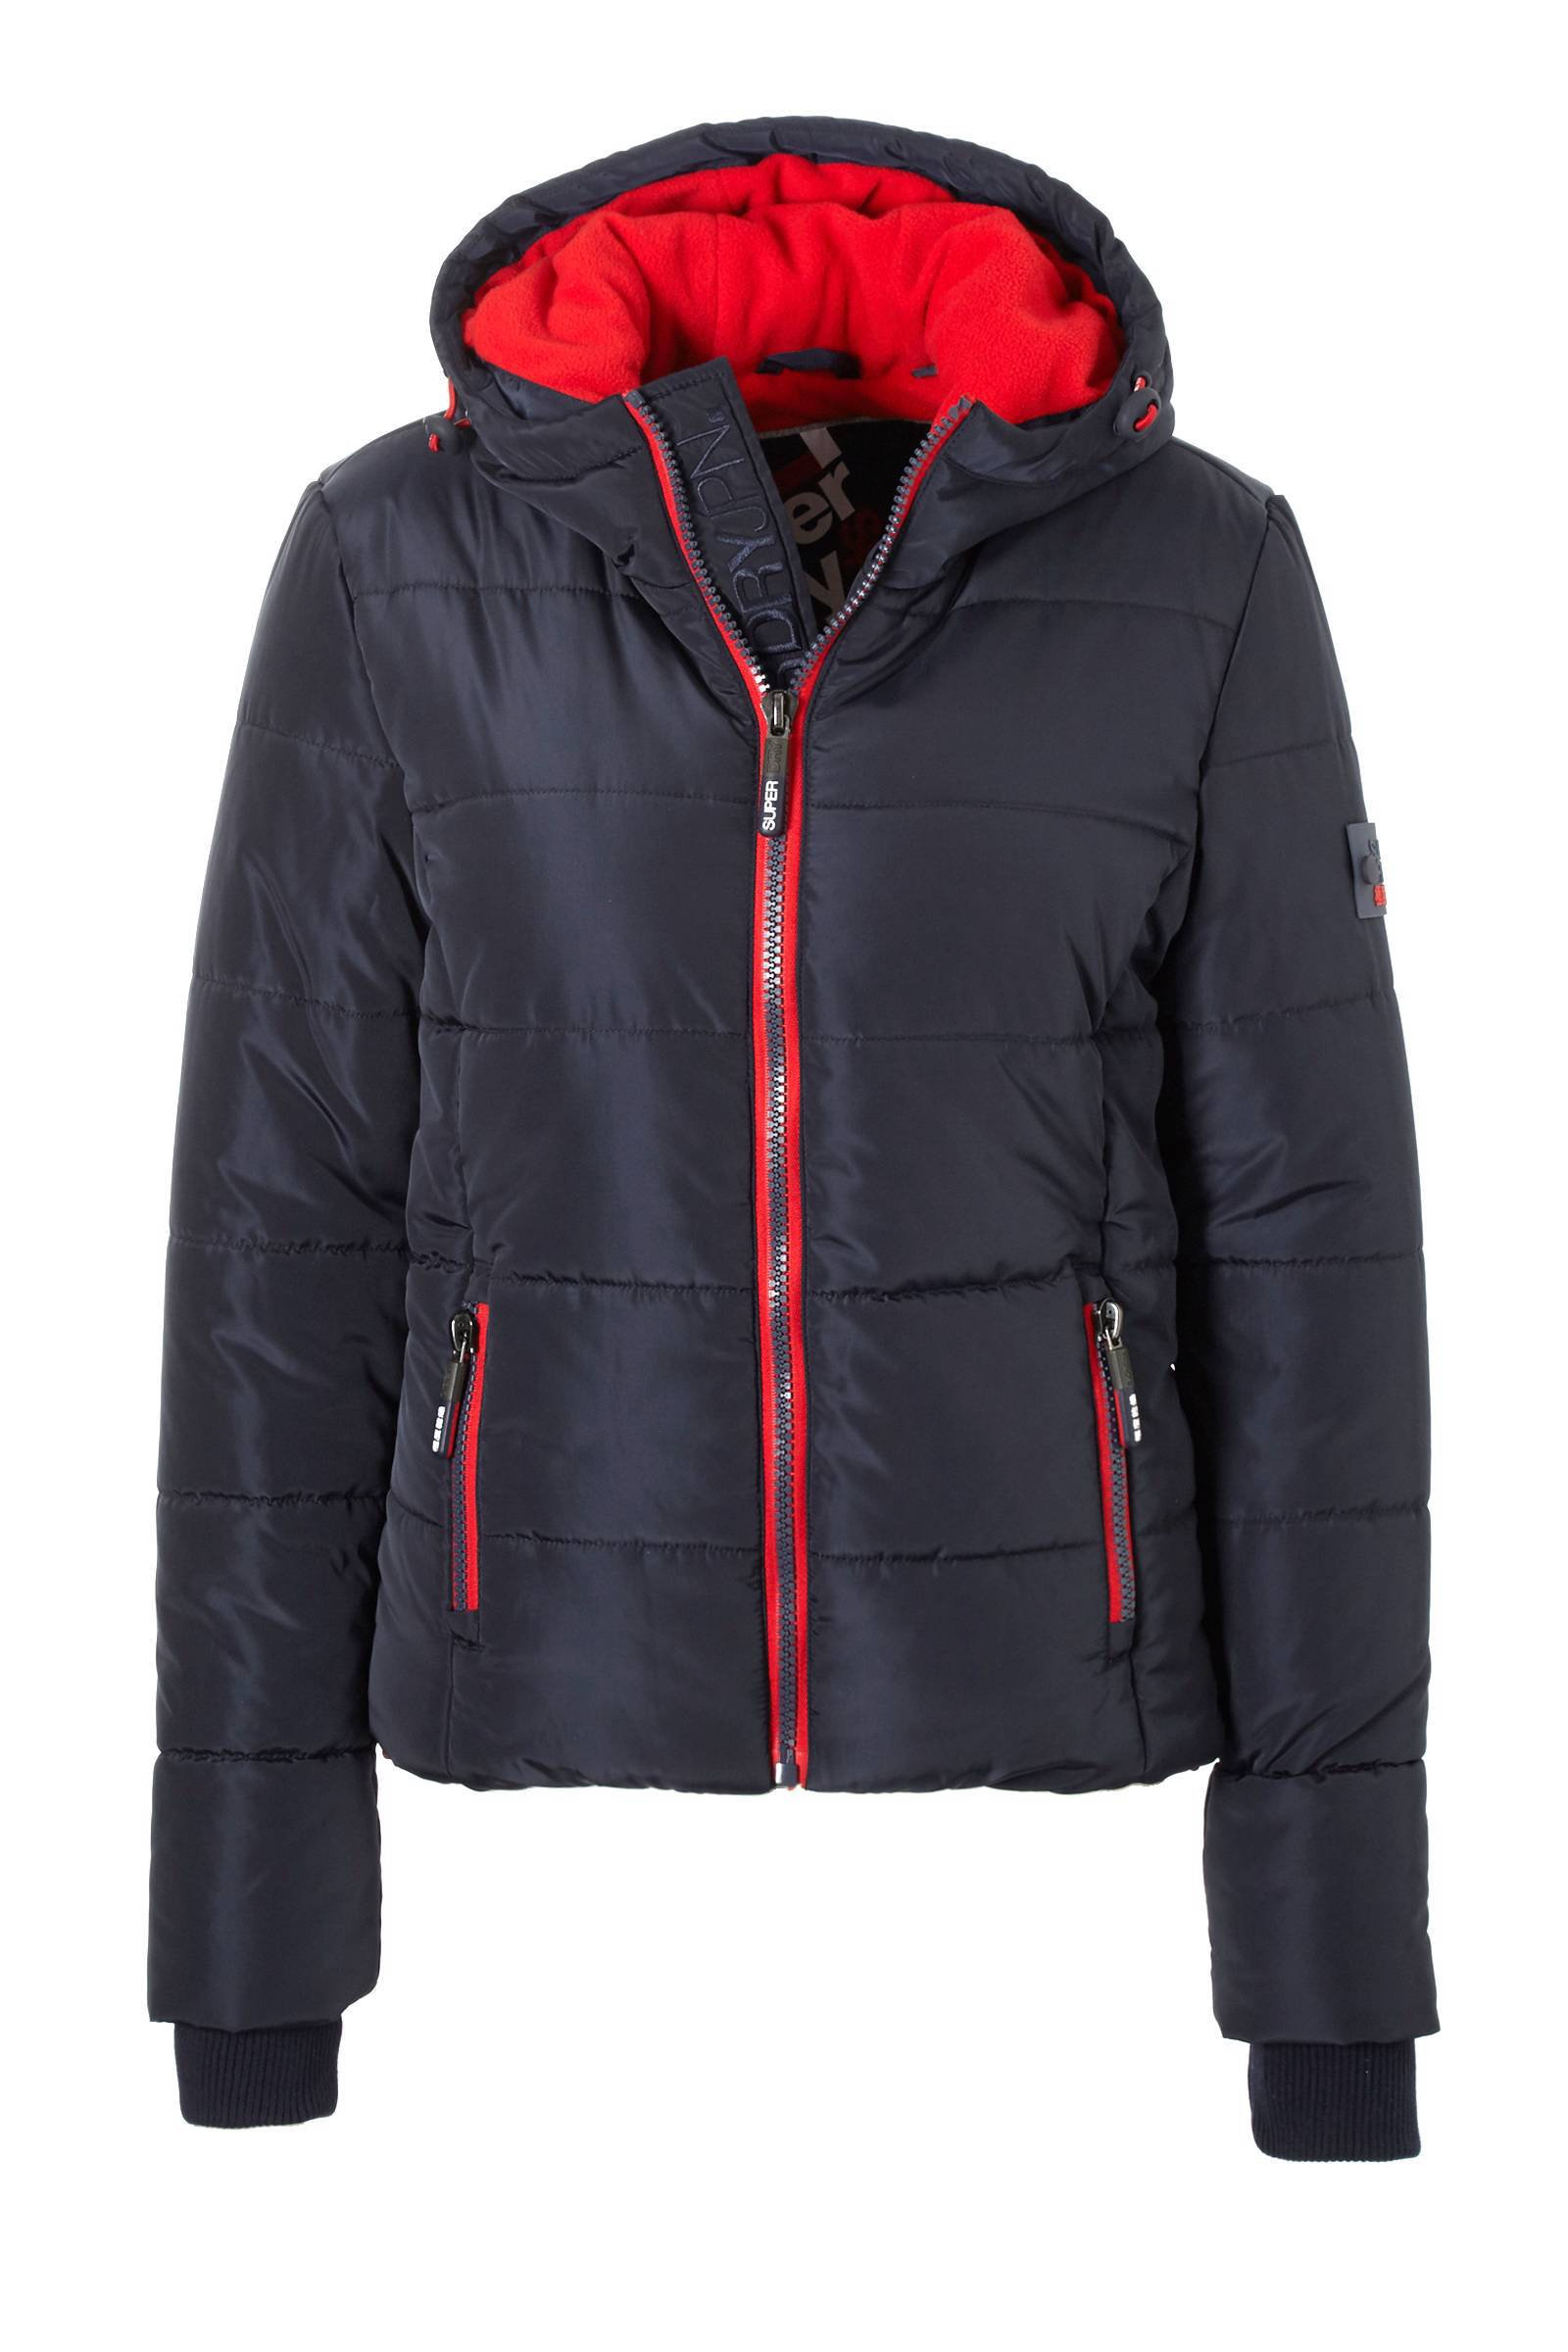 Sports Wehkamp Puffer Superdry Sports Superdry Jas qx6WOEW